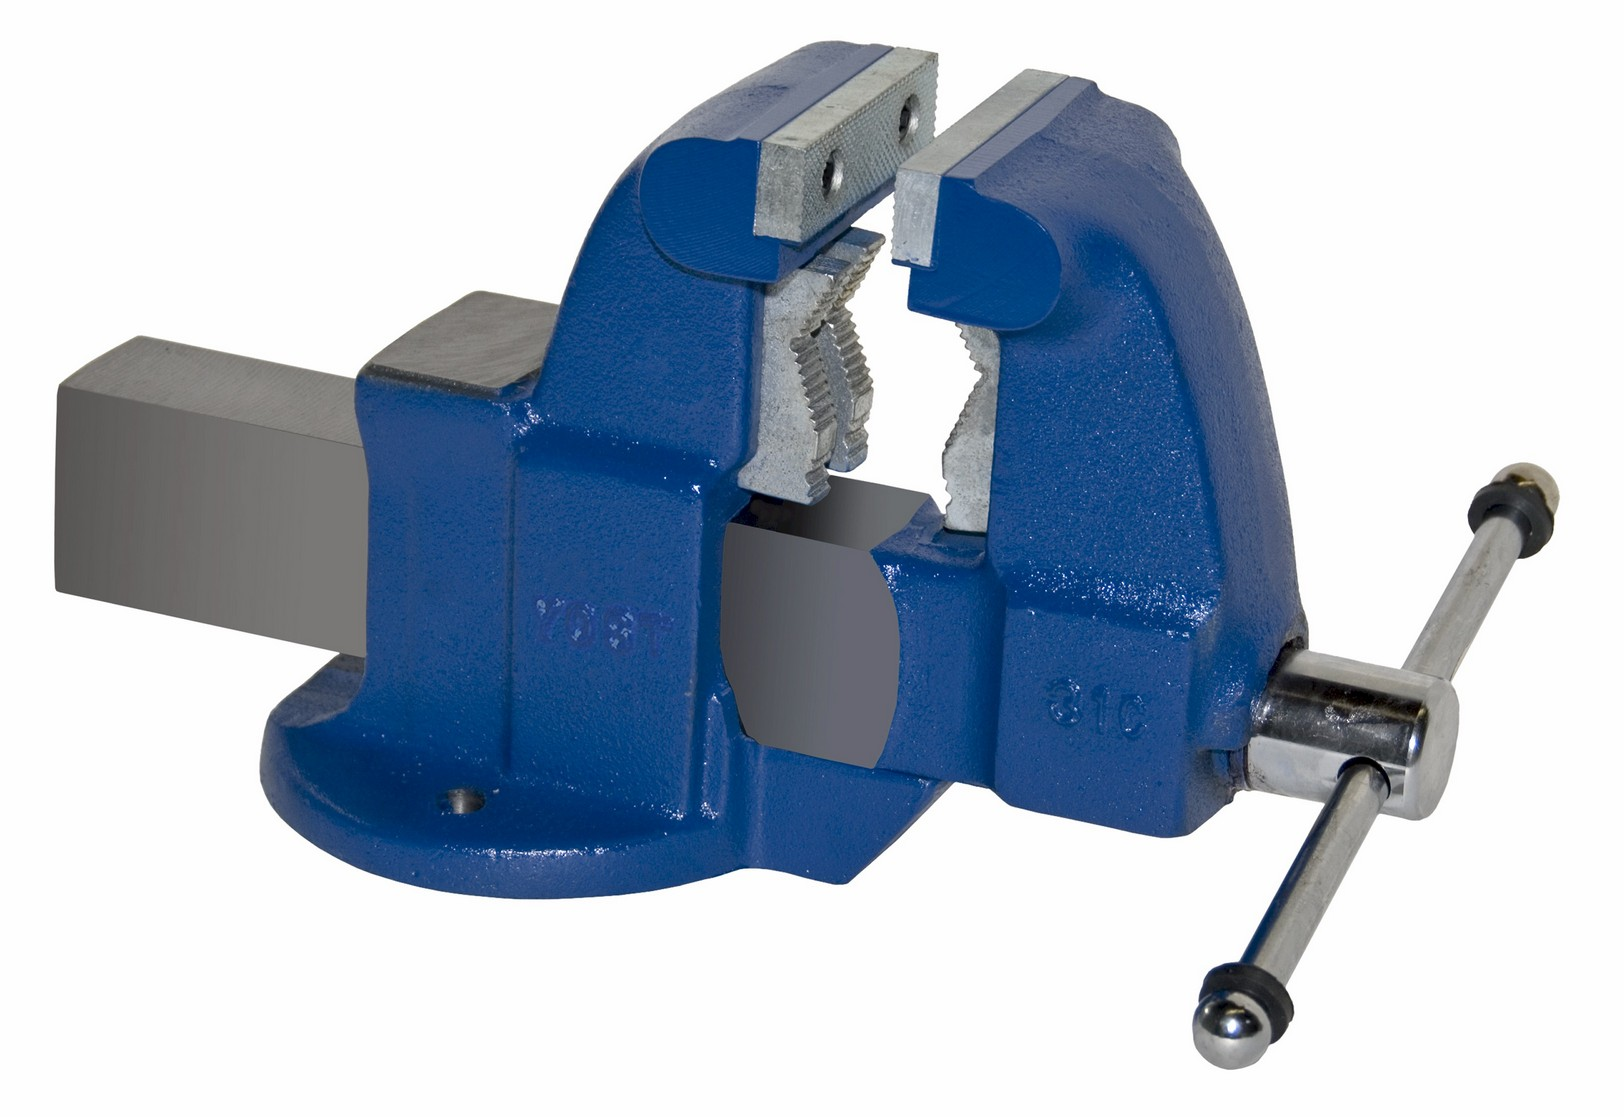 Yost Vises 131c 3 1 2 Heavy Duty Combination Pipe Bench Vise Stationary Base